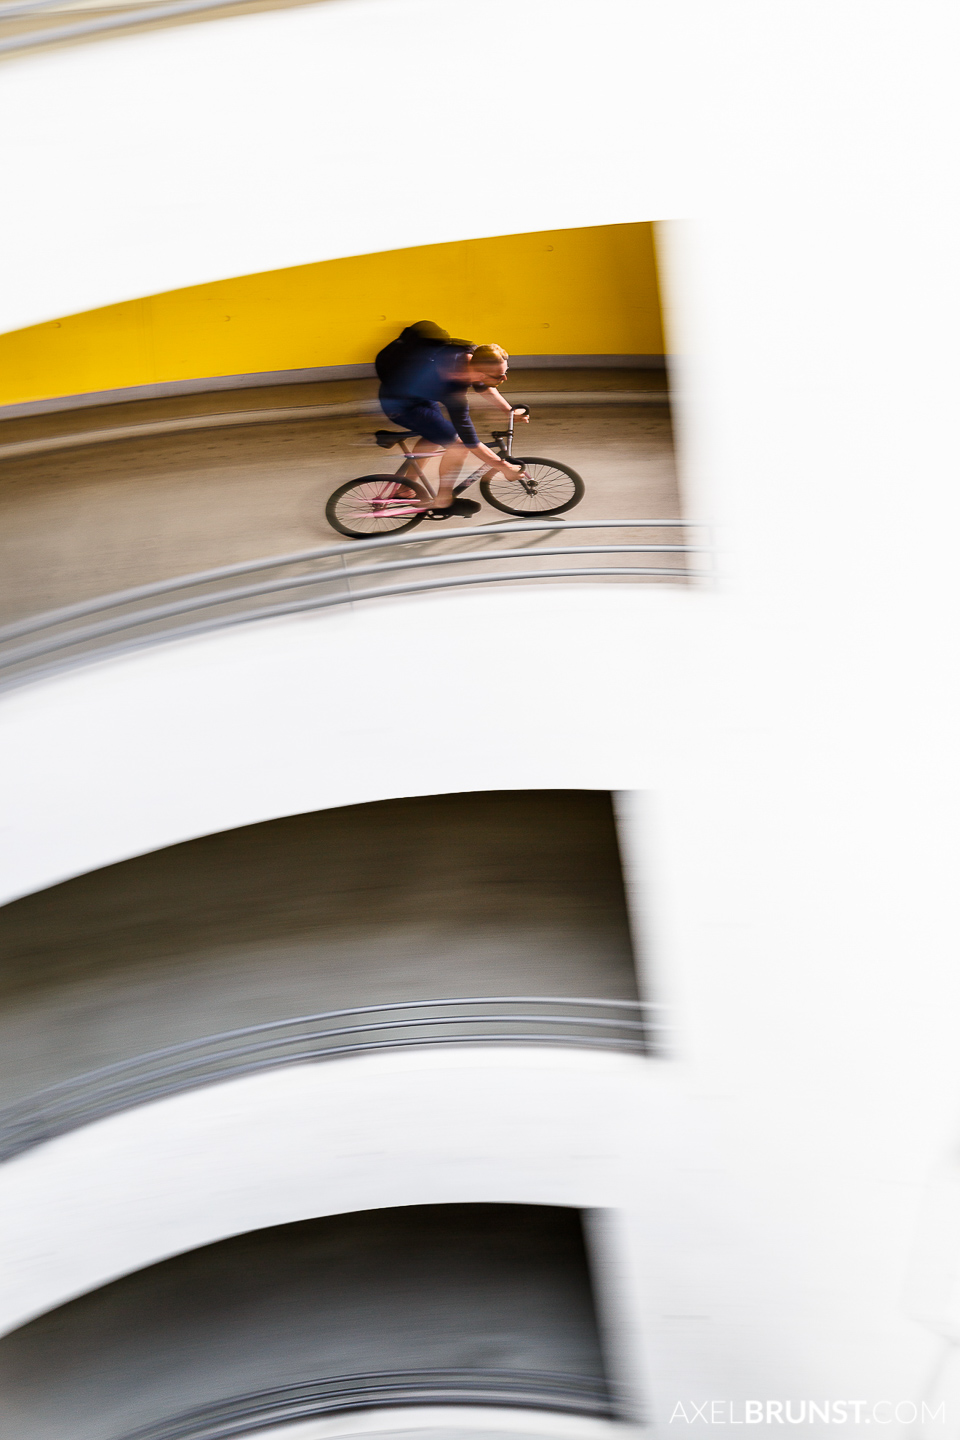 fixed-gear-cycling-stuttgart-6.jpg